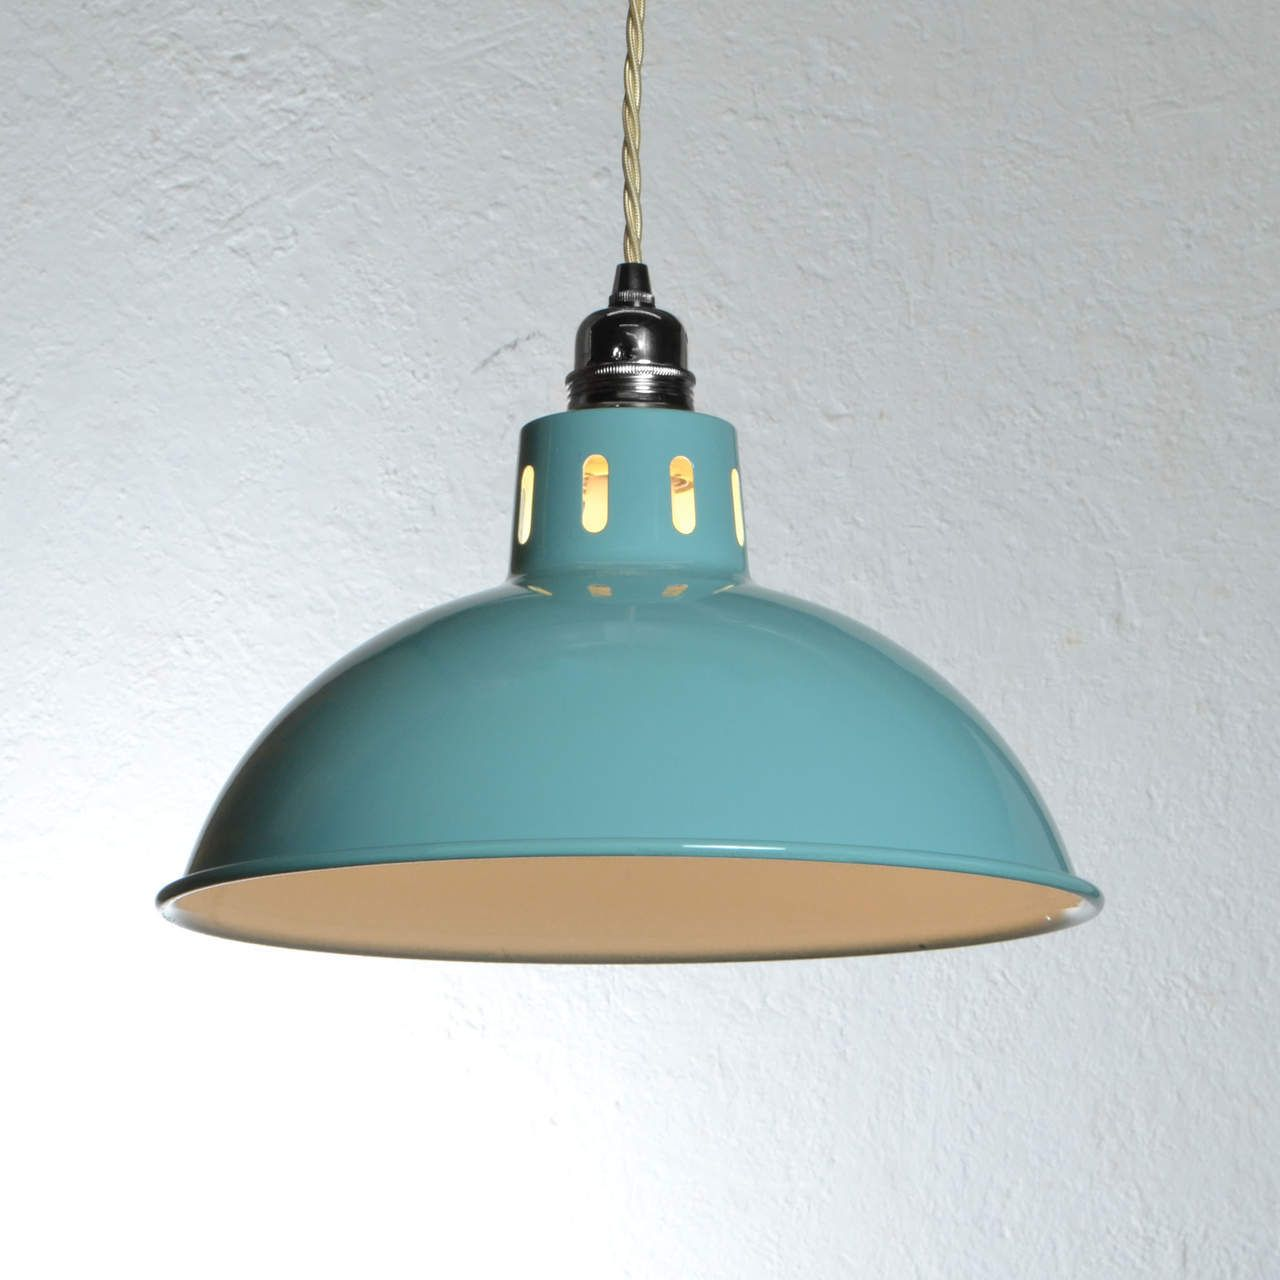 turquoise pendant lighting. Factory Industrial Pendant Light - Turquoise Artifact Lighting P